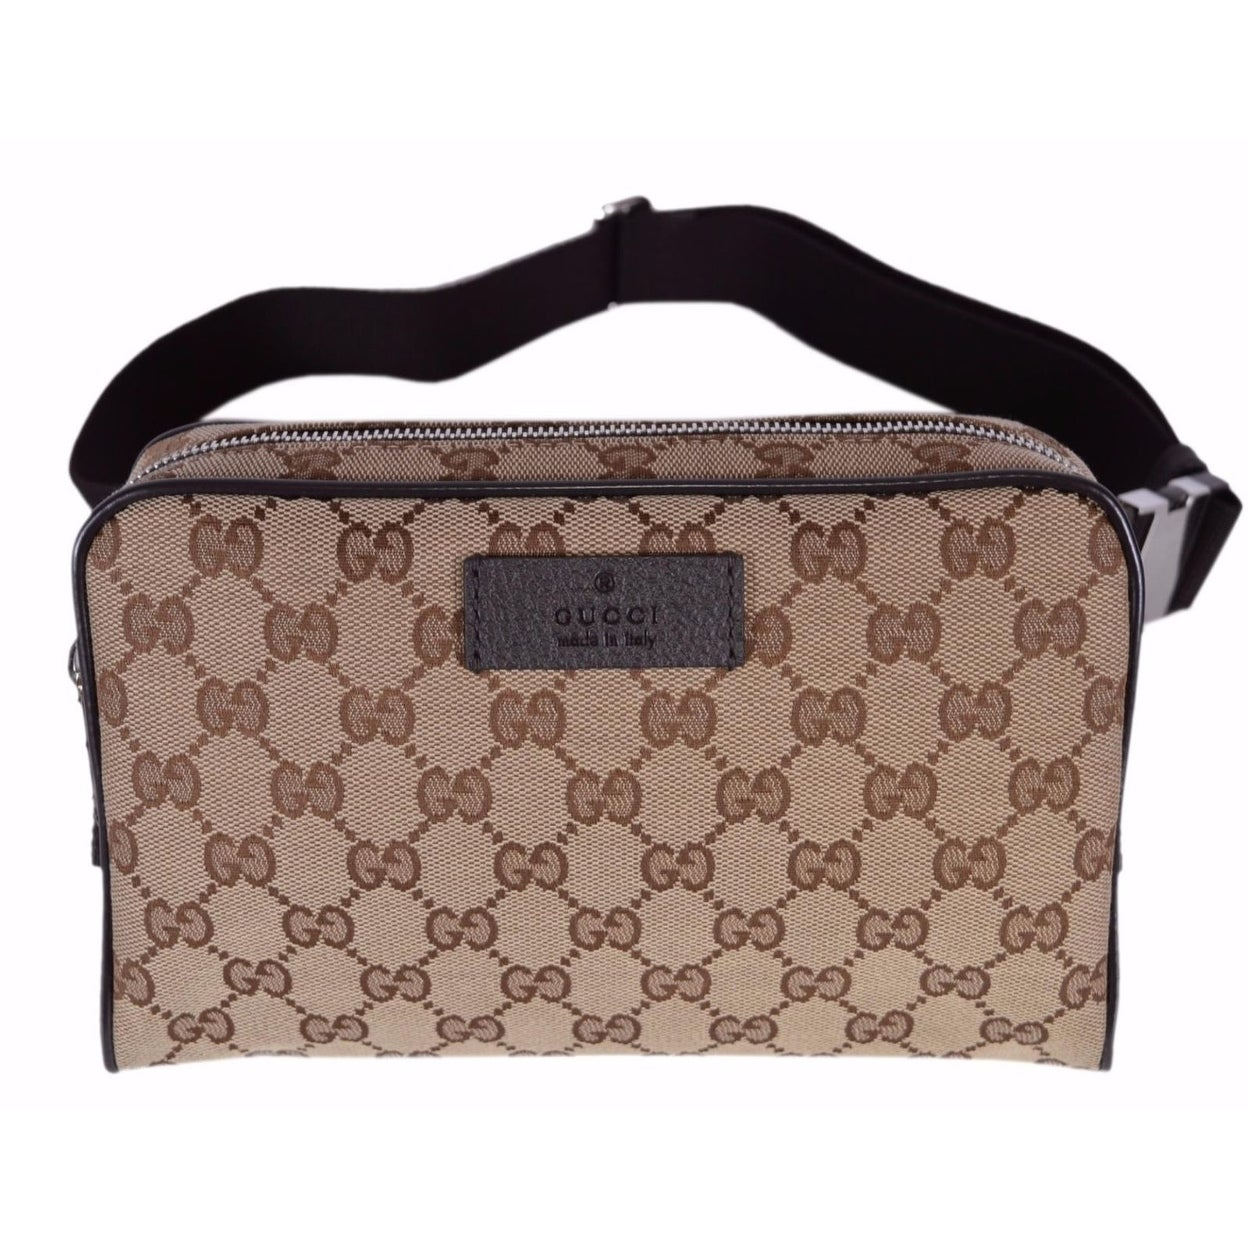 01dcd10d5698 Gucci 449174 GG Guccissima Small Canvas GG Waist Belt Fanny Pack Bag -  Brown - 9